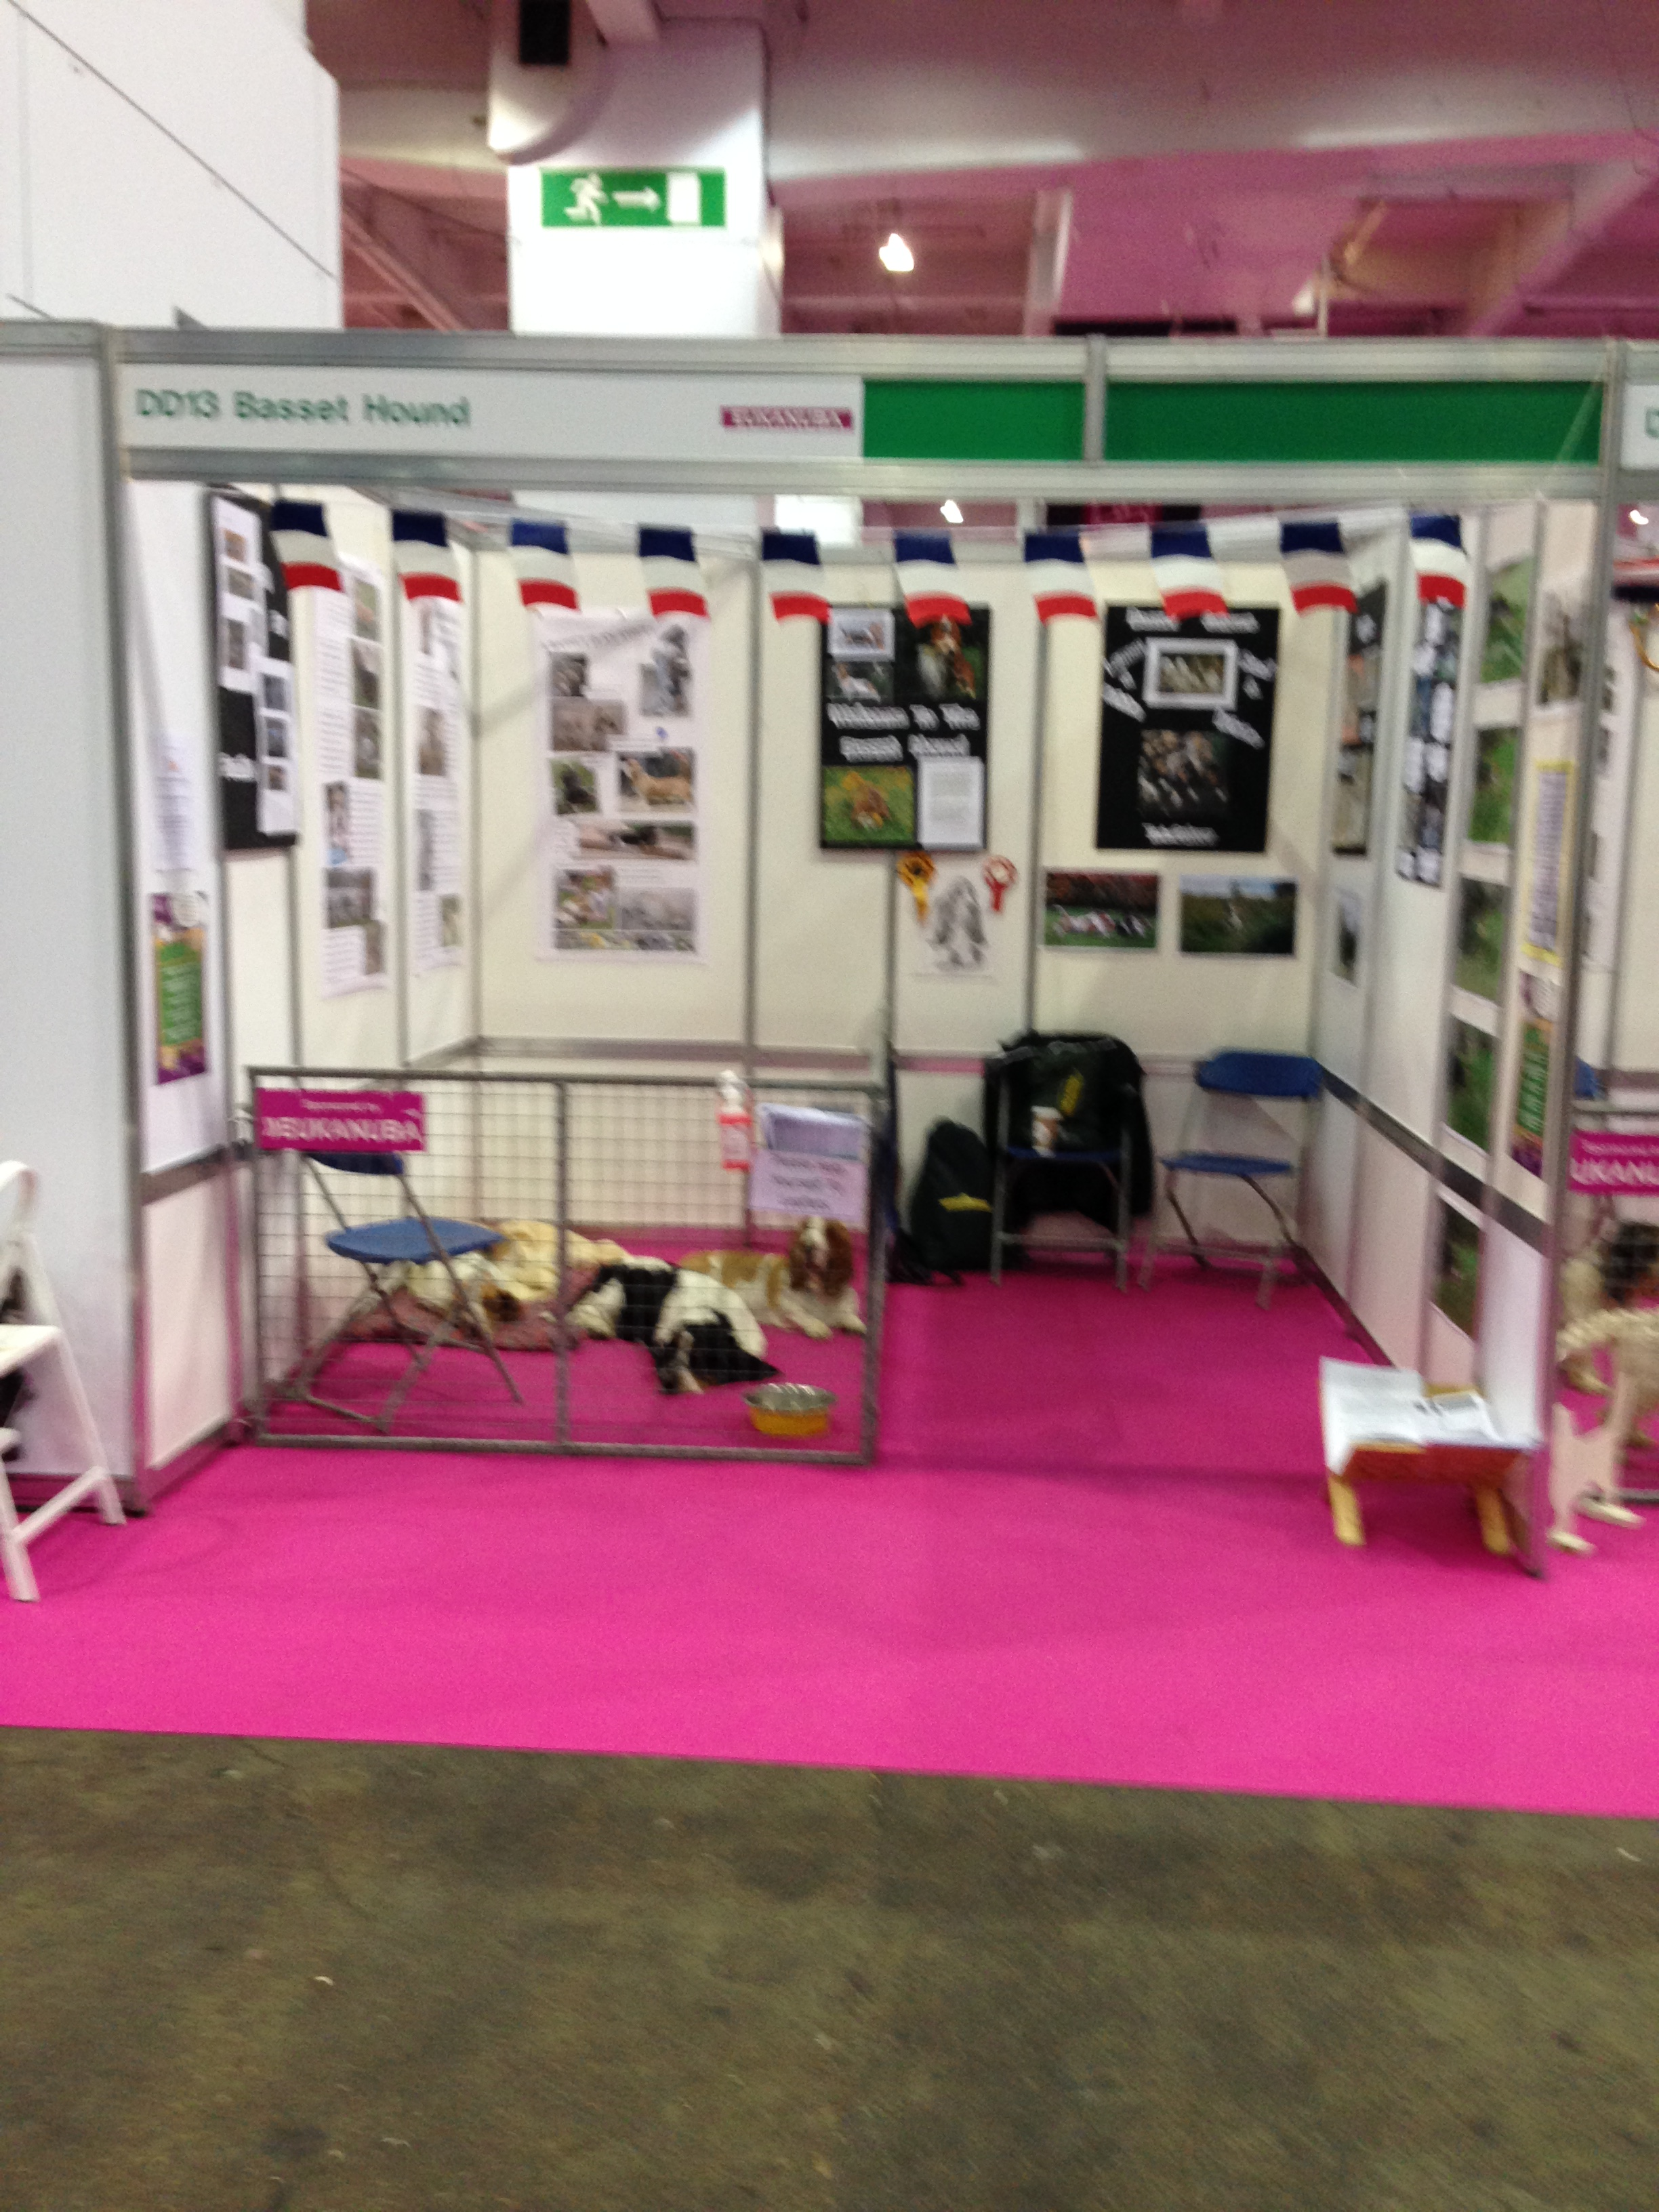 The Basset Hound Booth